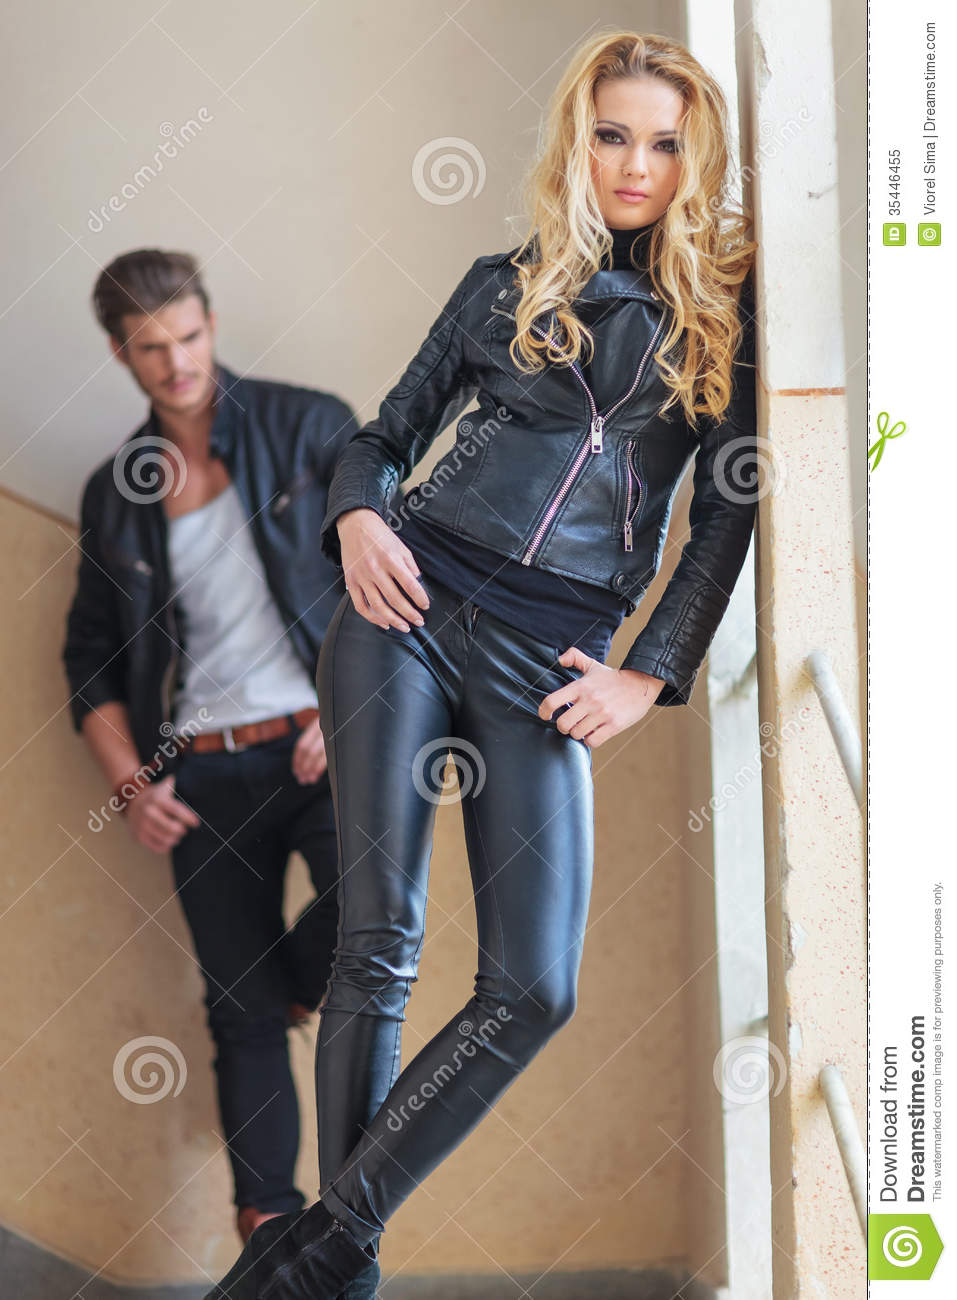 31bfe6f0cdc Fashion Man And Woman In Leather Clothes Posing Stock Image - Image ...